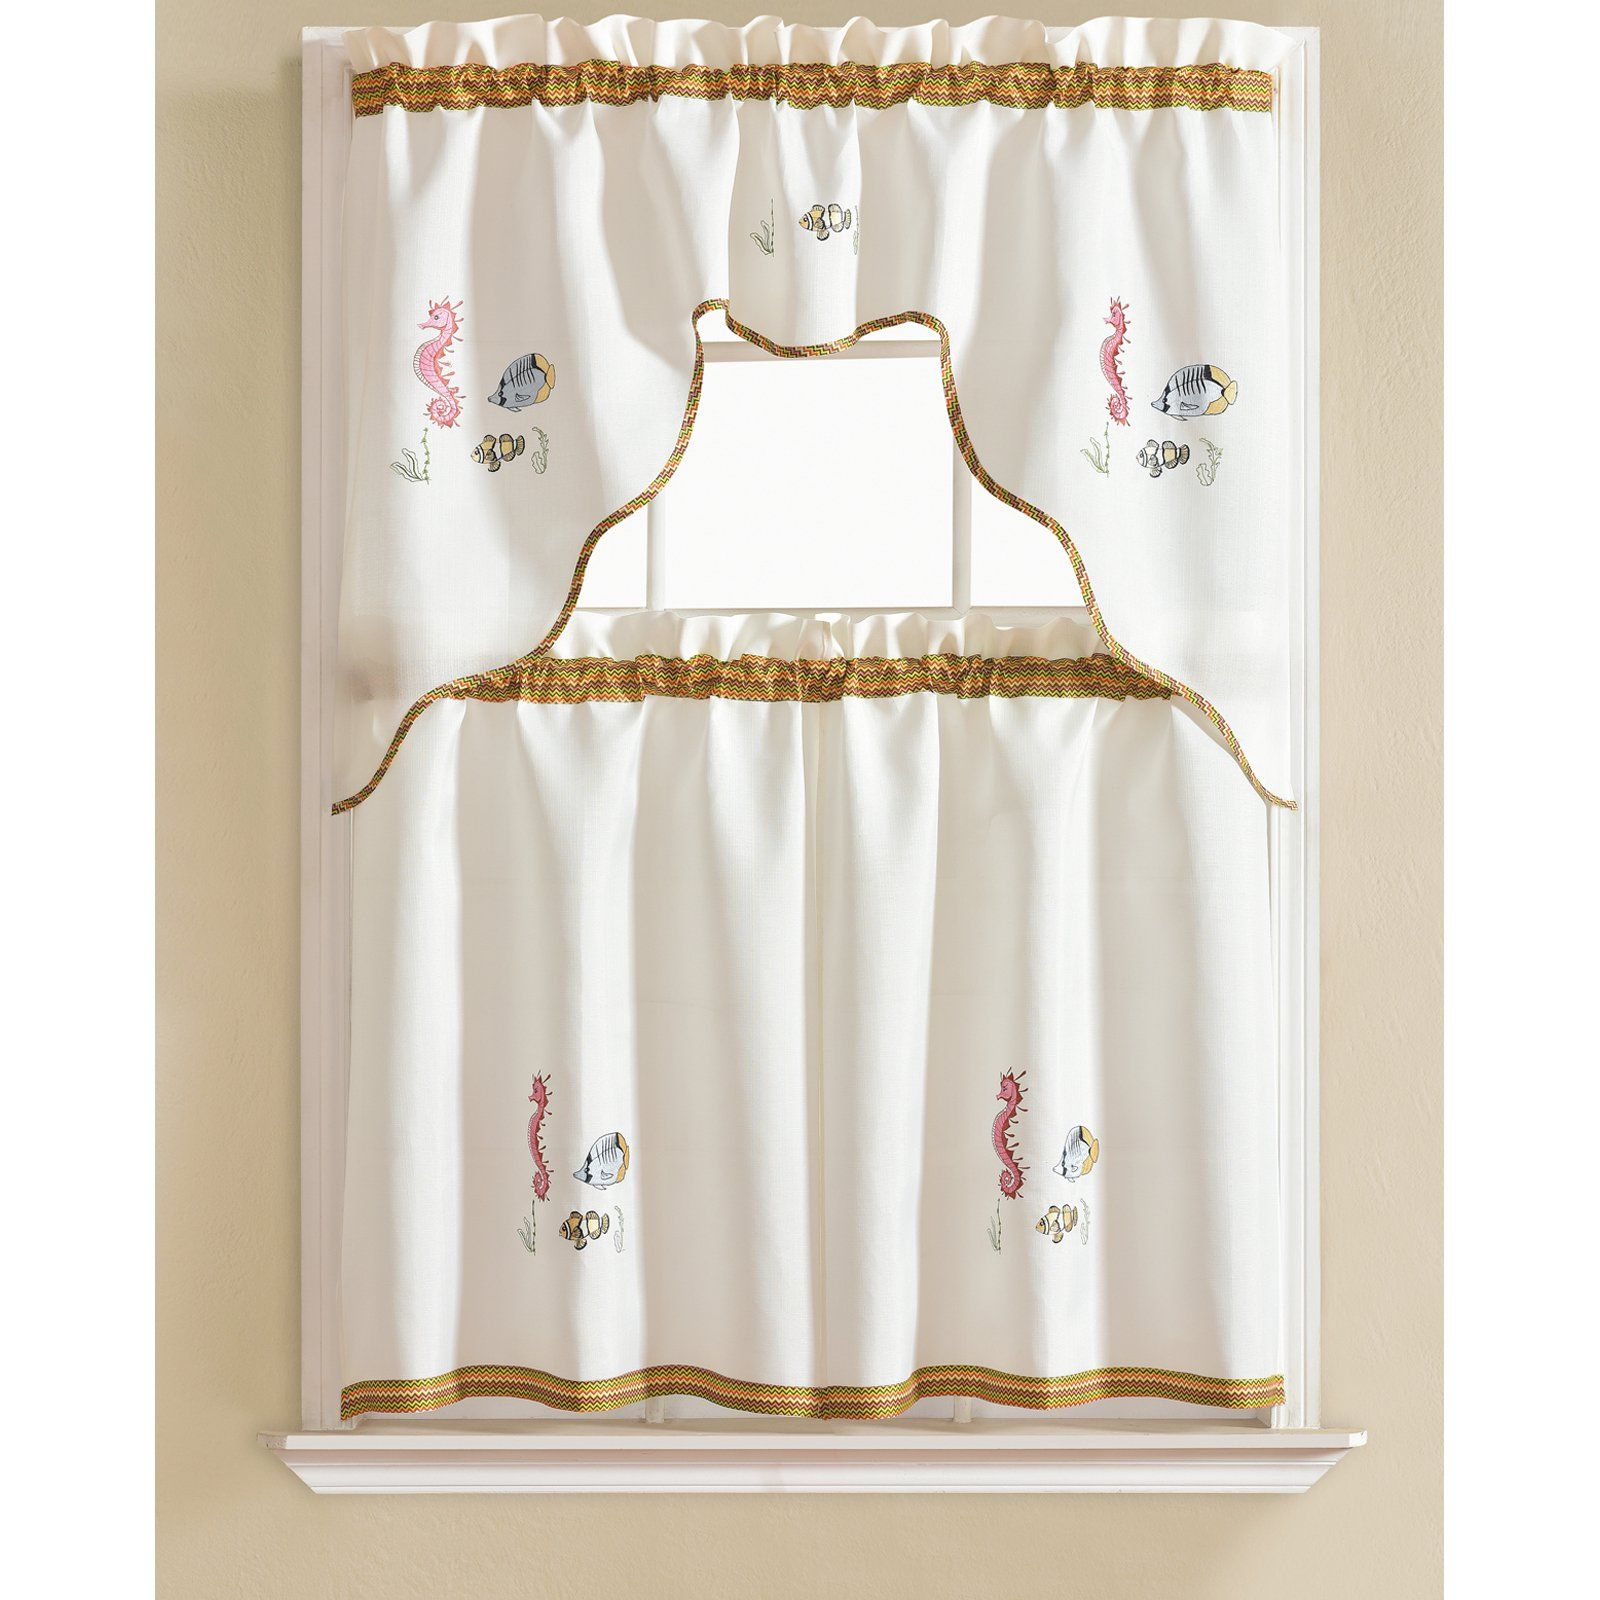 Rt Designers Collection Grand Seahorse Embroidered Kitchen Curtain Tier And Valance Set In 2021 Curtains Curtain Decor Kitchen Curtain Sets